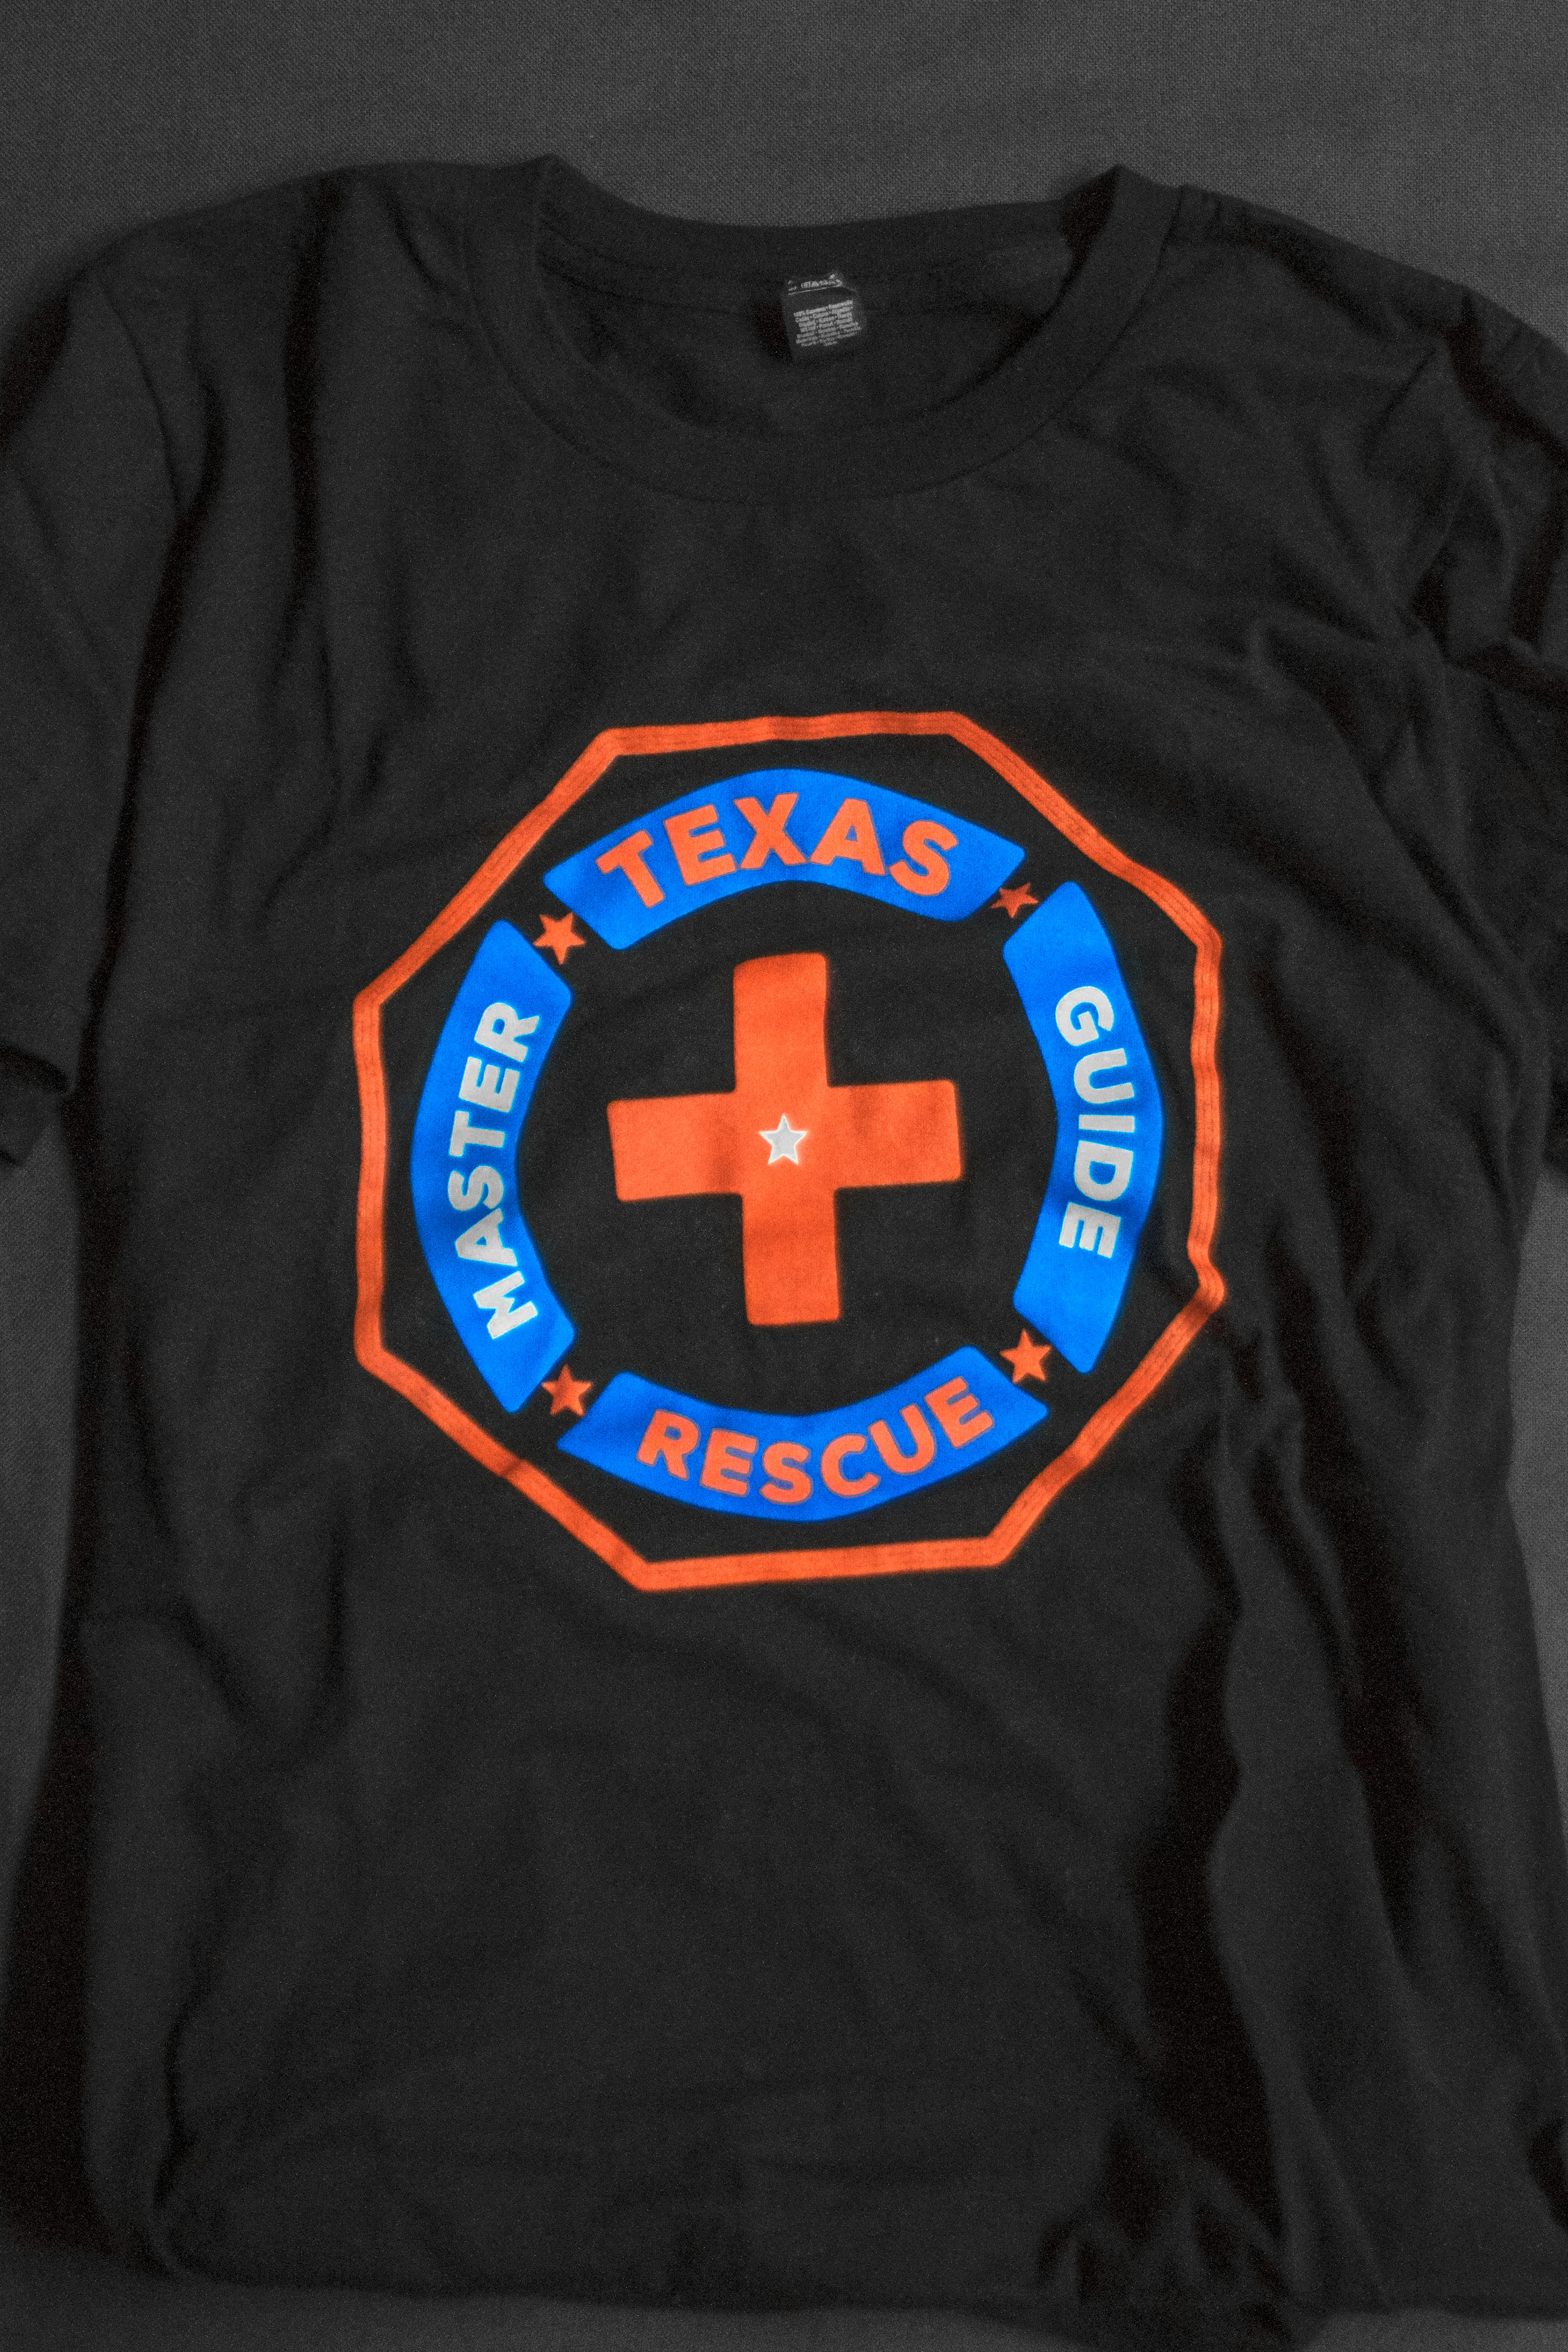 MASTER GUIDES -  TX RESCUE TEE    $10.00